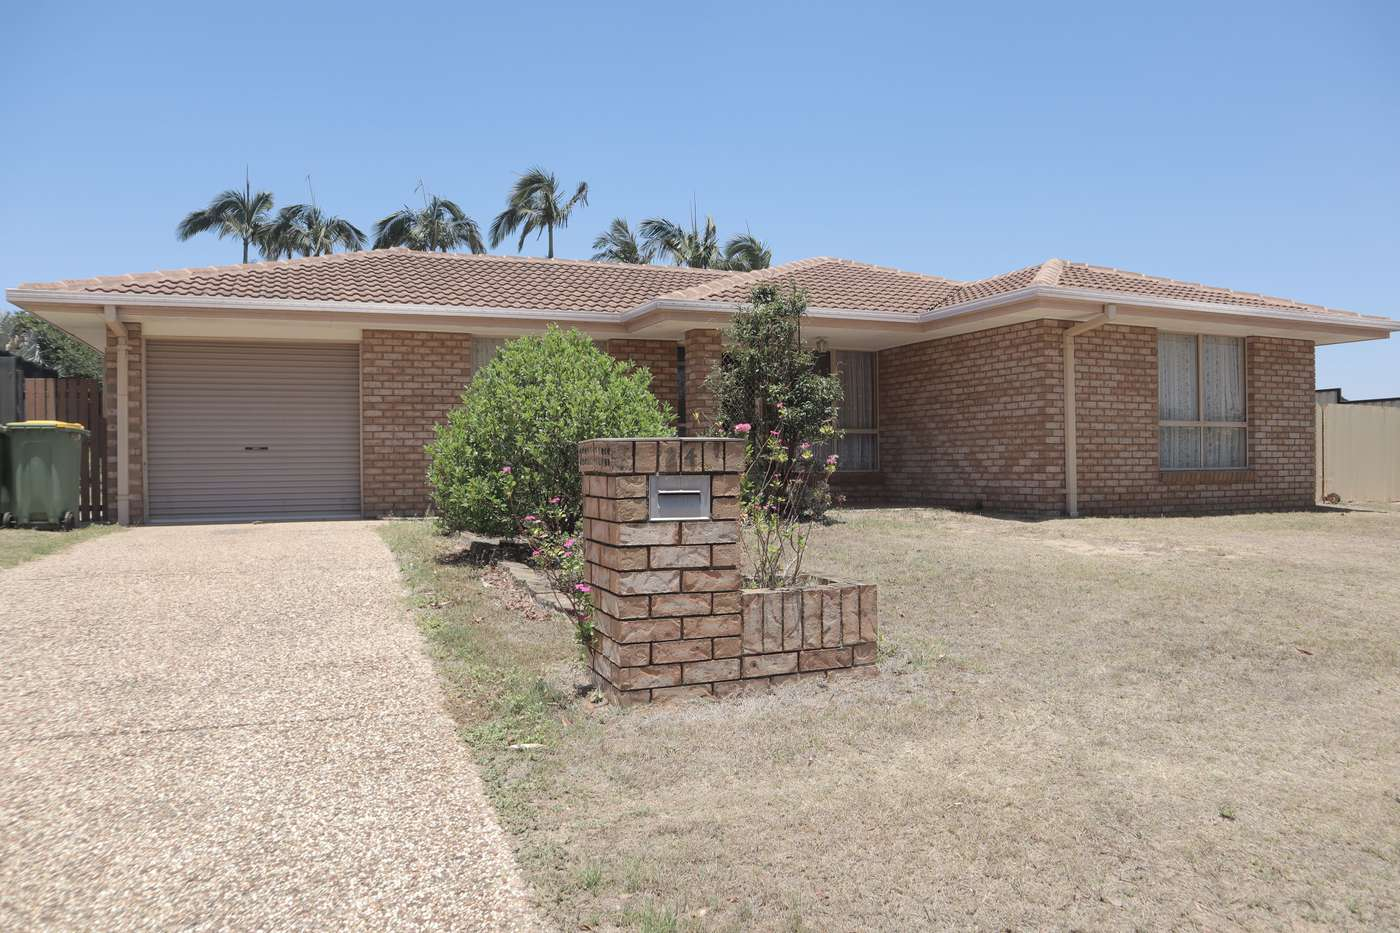 Main view of Homely house listing, 24 Volstead Road, Heritage Park, QLD 4118